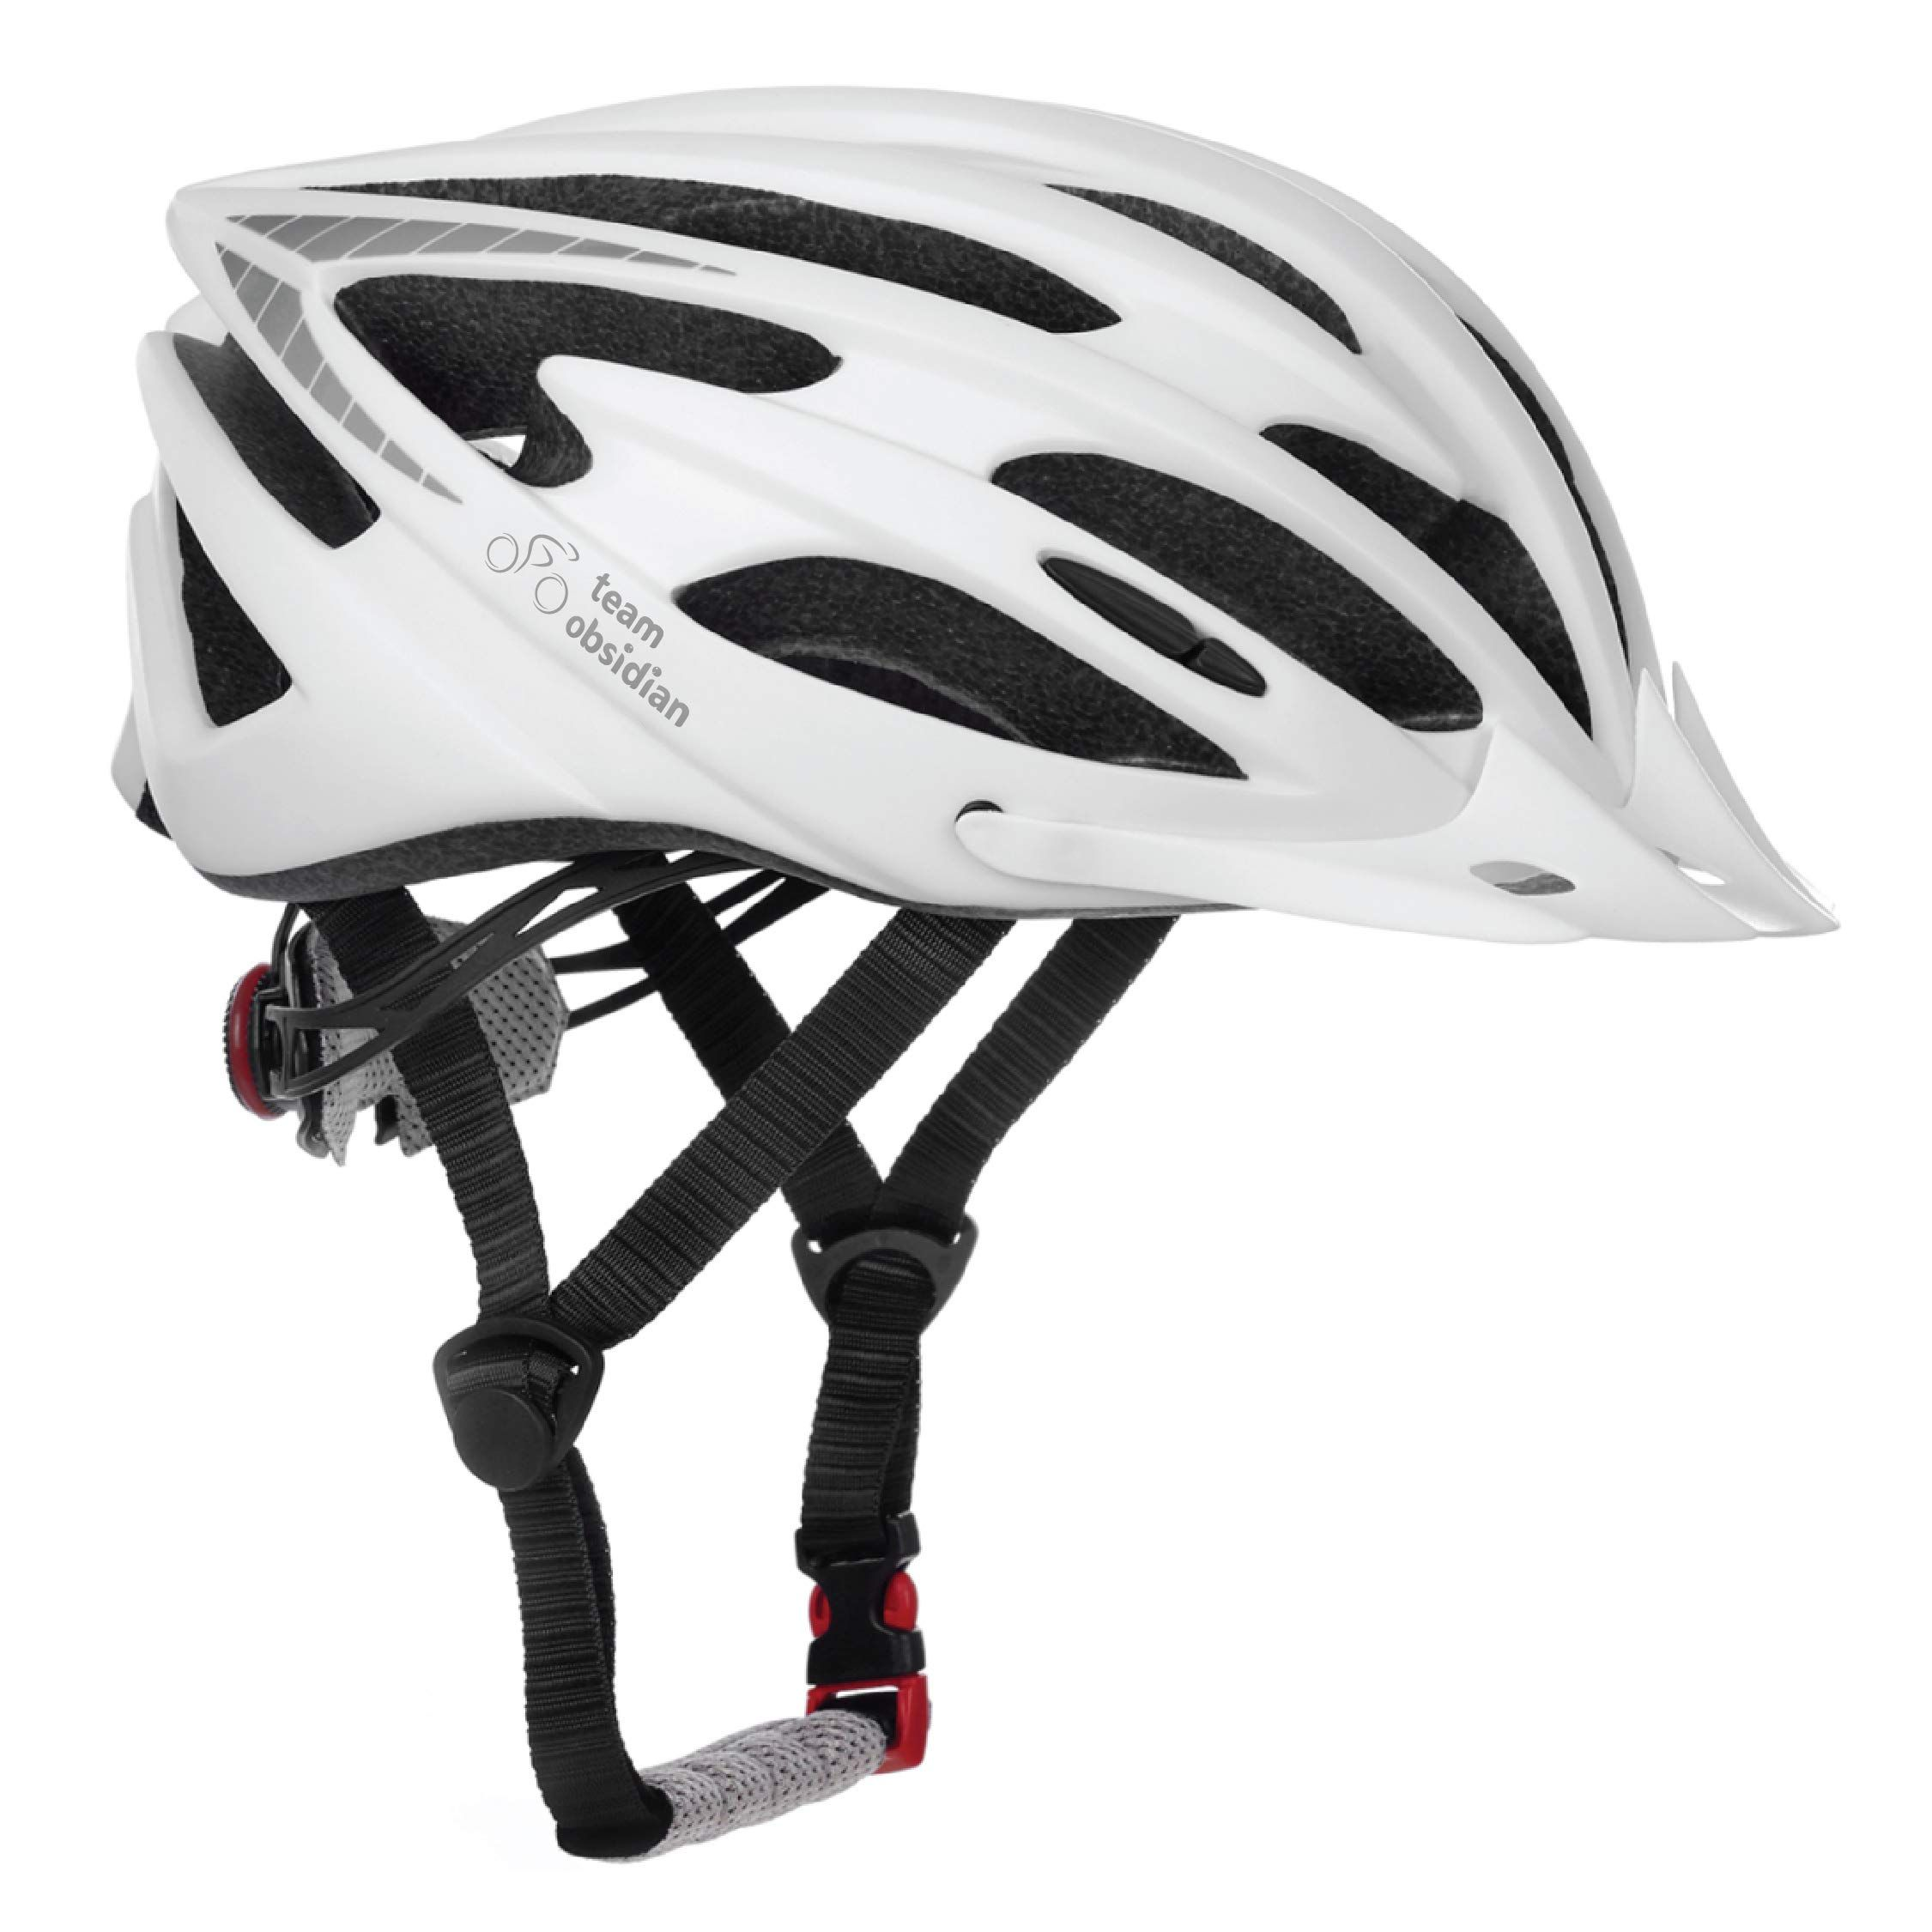 Teamobsidian Airflow Bike Helmet With In Molded Reinforcing